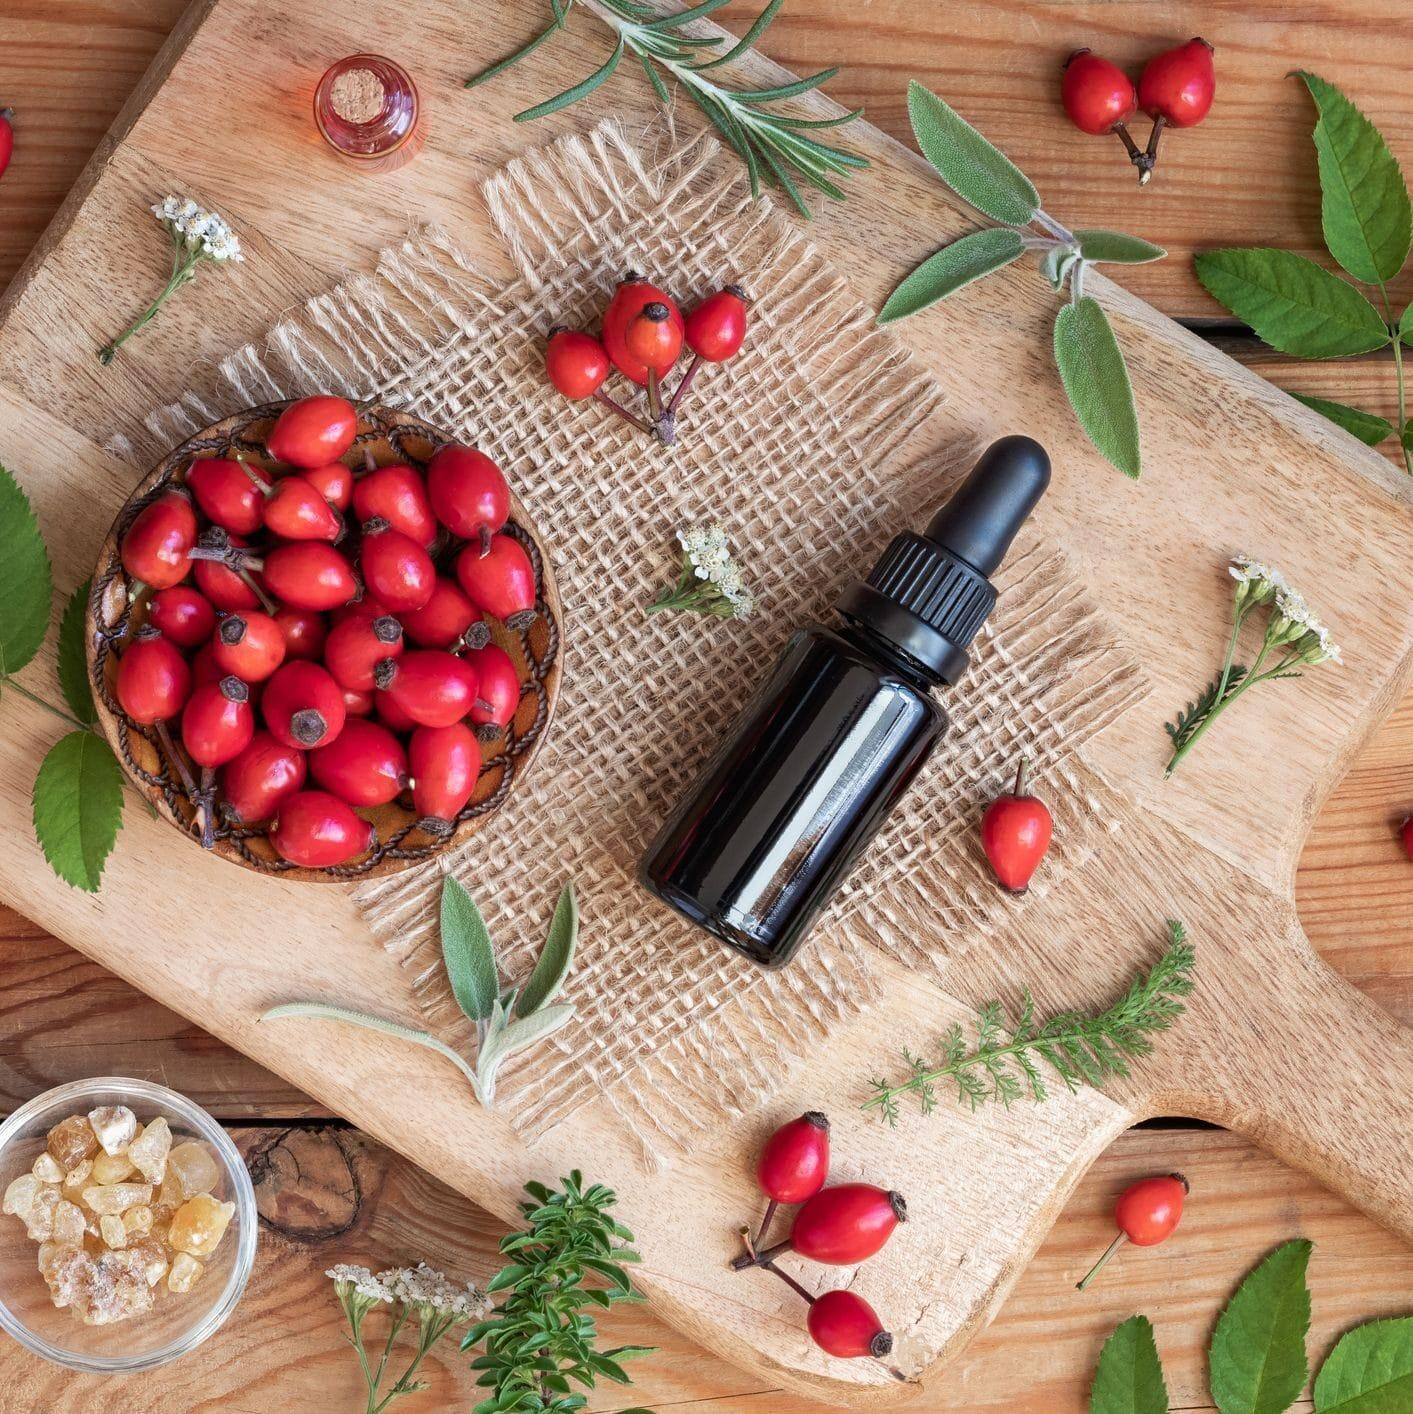 8 Benefits of Rosehip Oil - Why You Should Use Rosehip Oil On Your Face